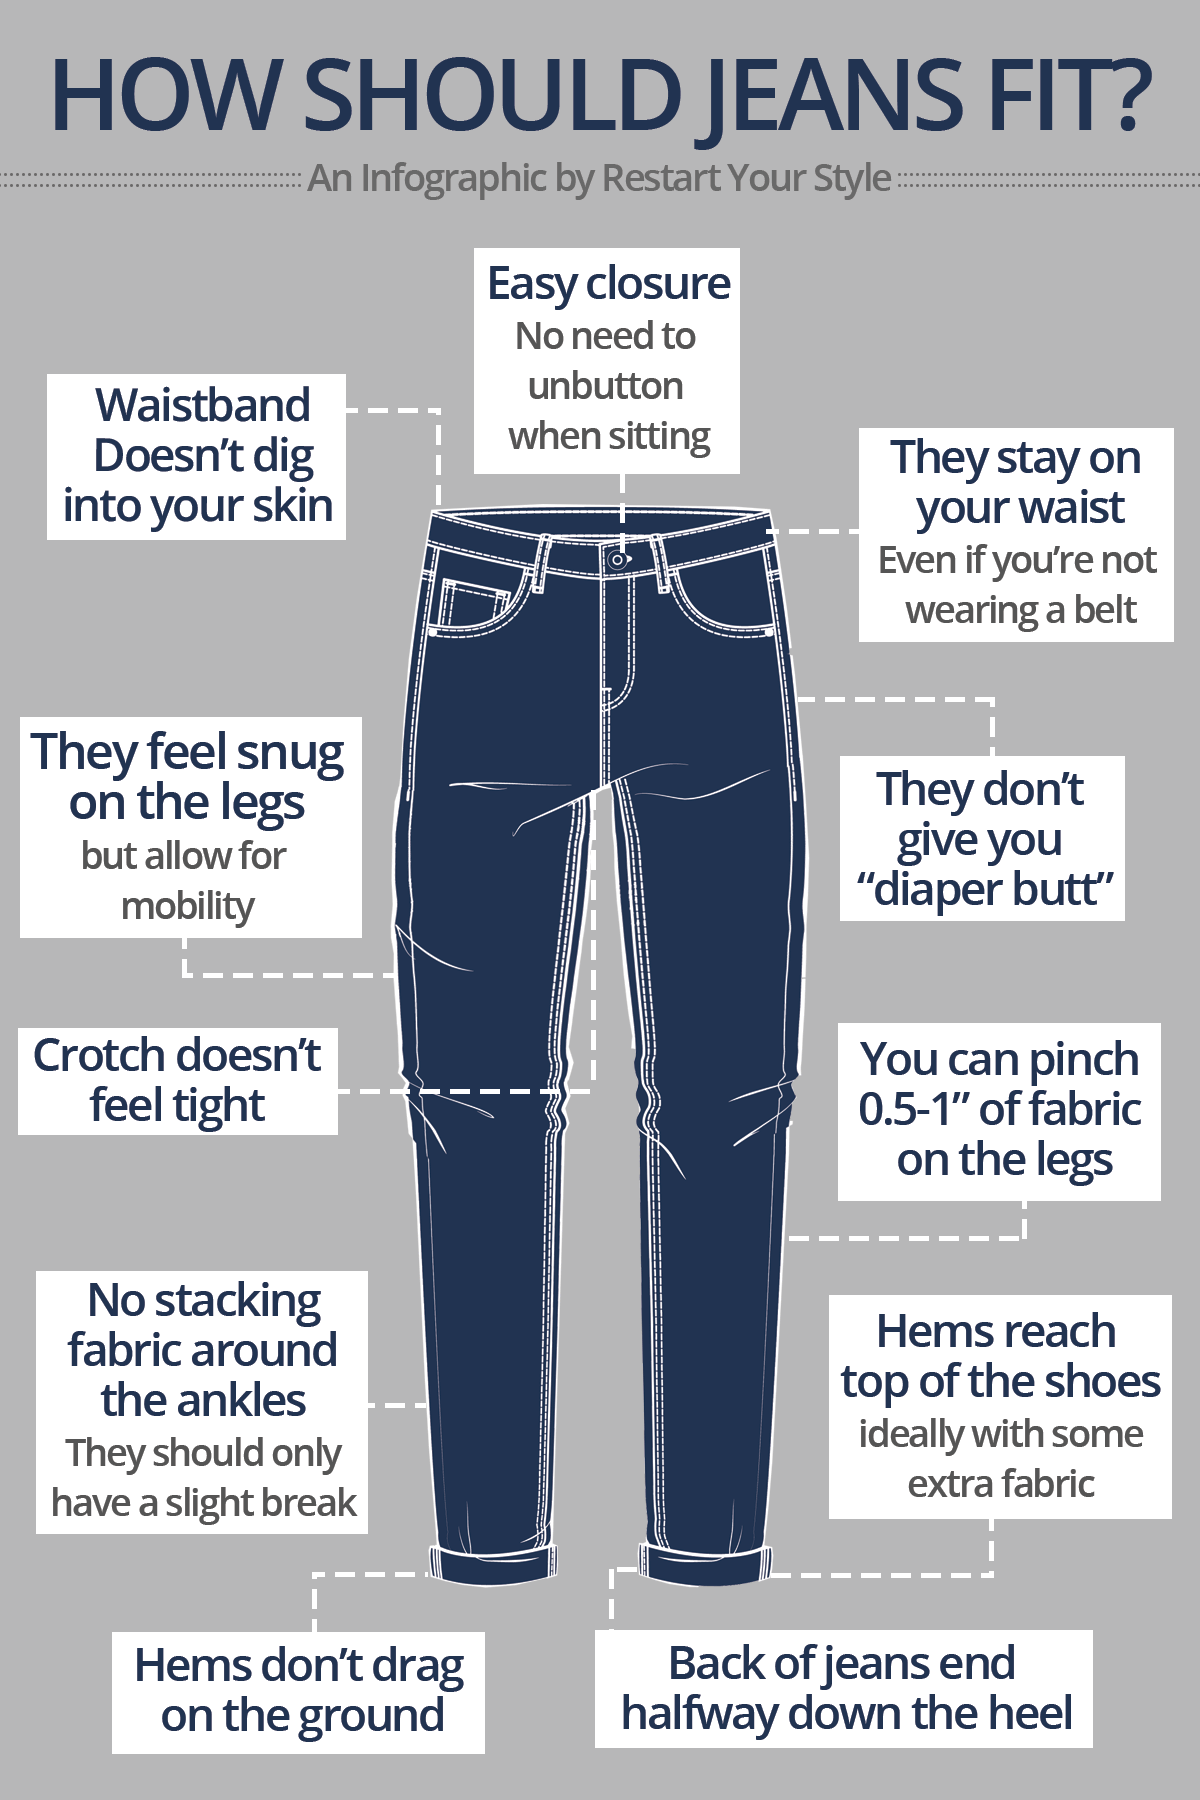 How Should Jeans Fit visual checklist